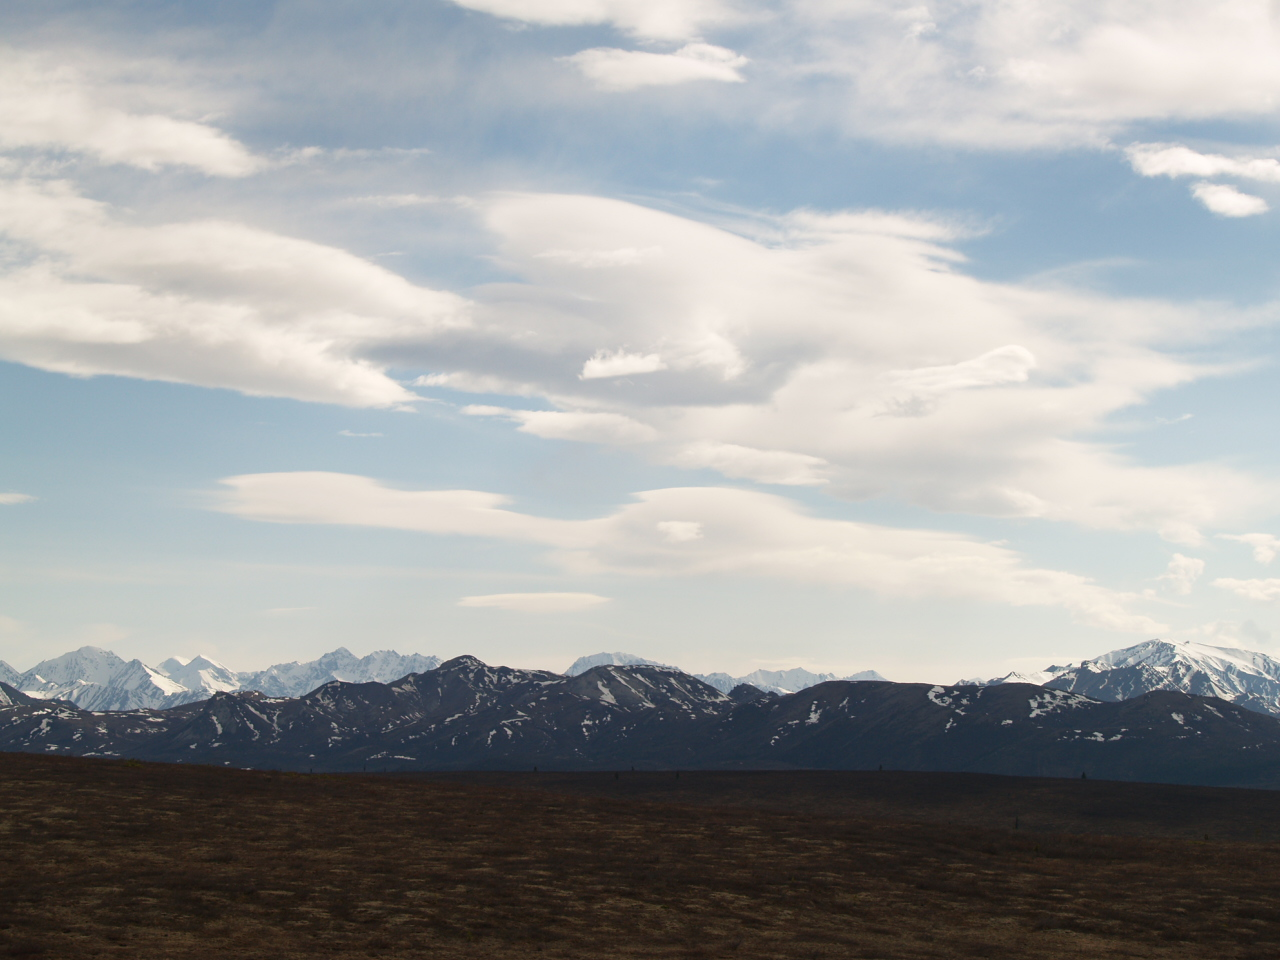 Afternoon view across the mountains in Denali - The Mountain is just to the right edge of photograph (2007).